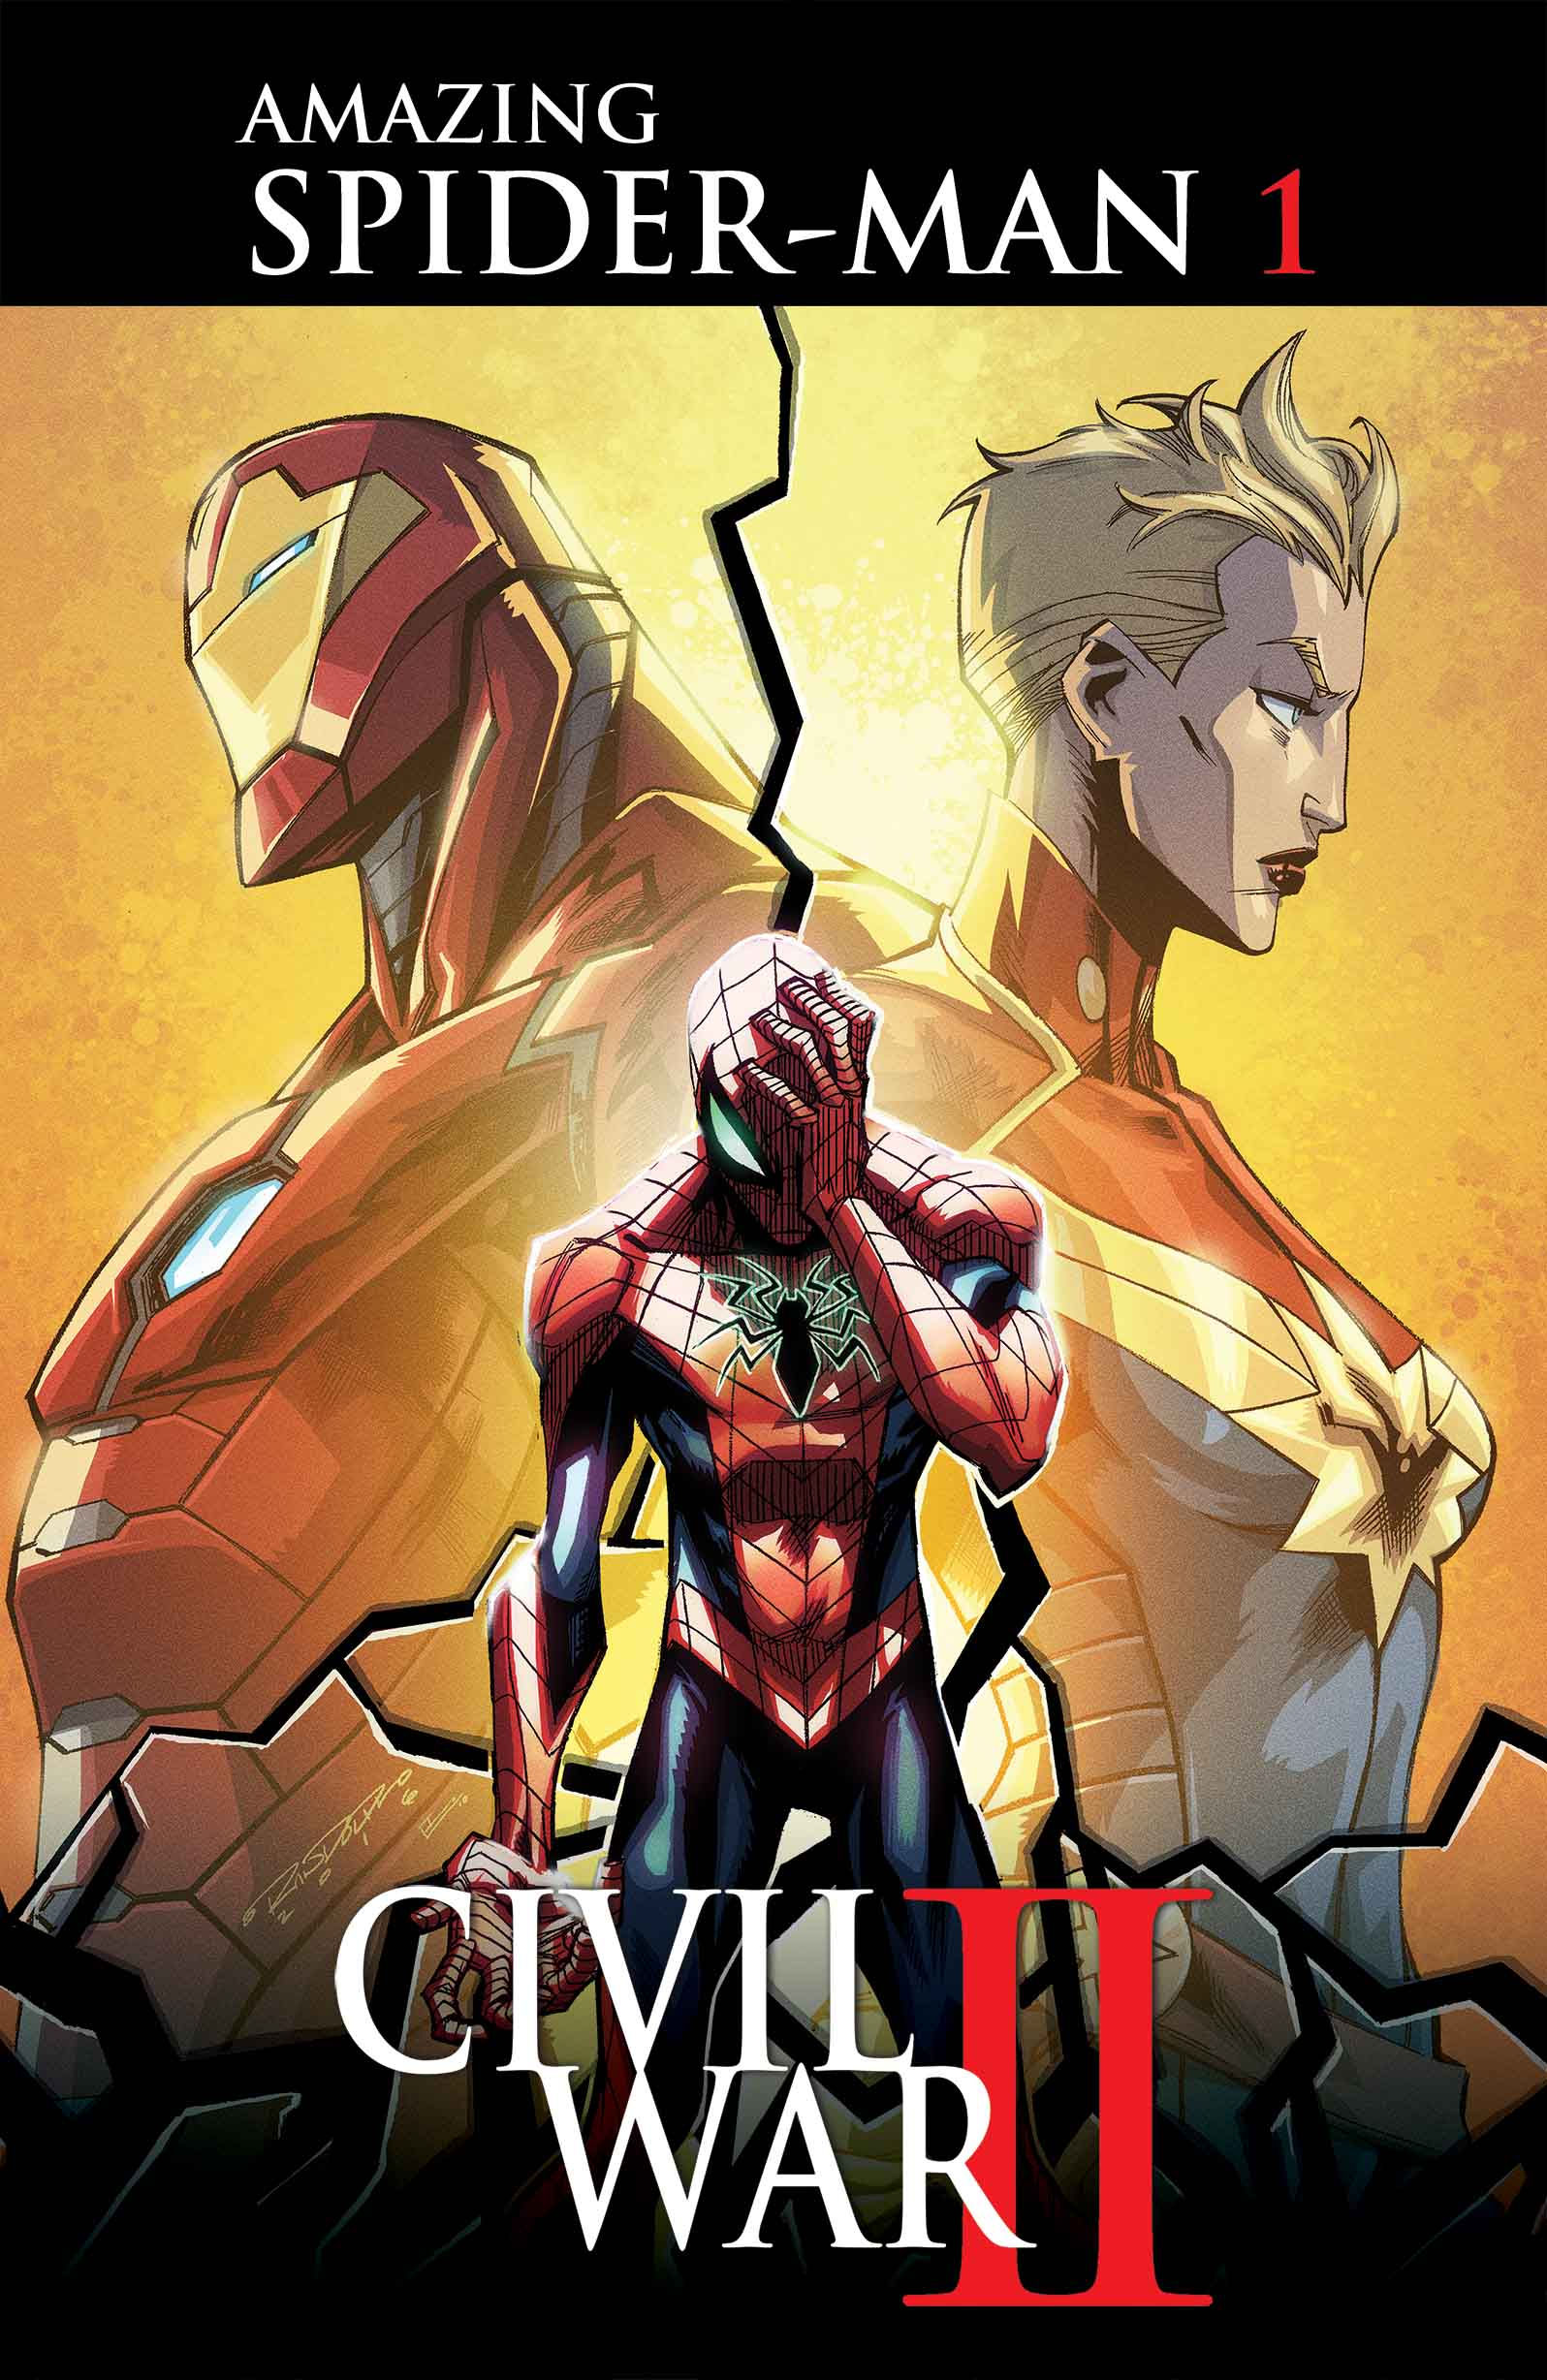 Civil War II: Amazing Spider-Man #1!